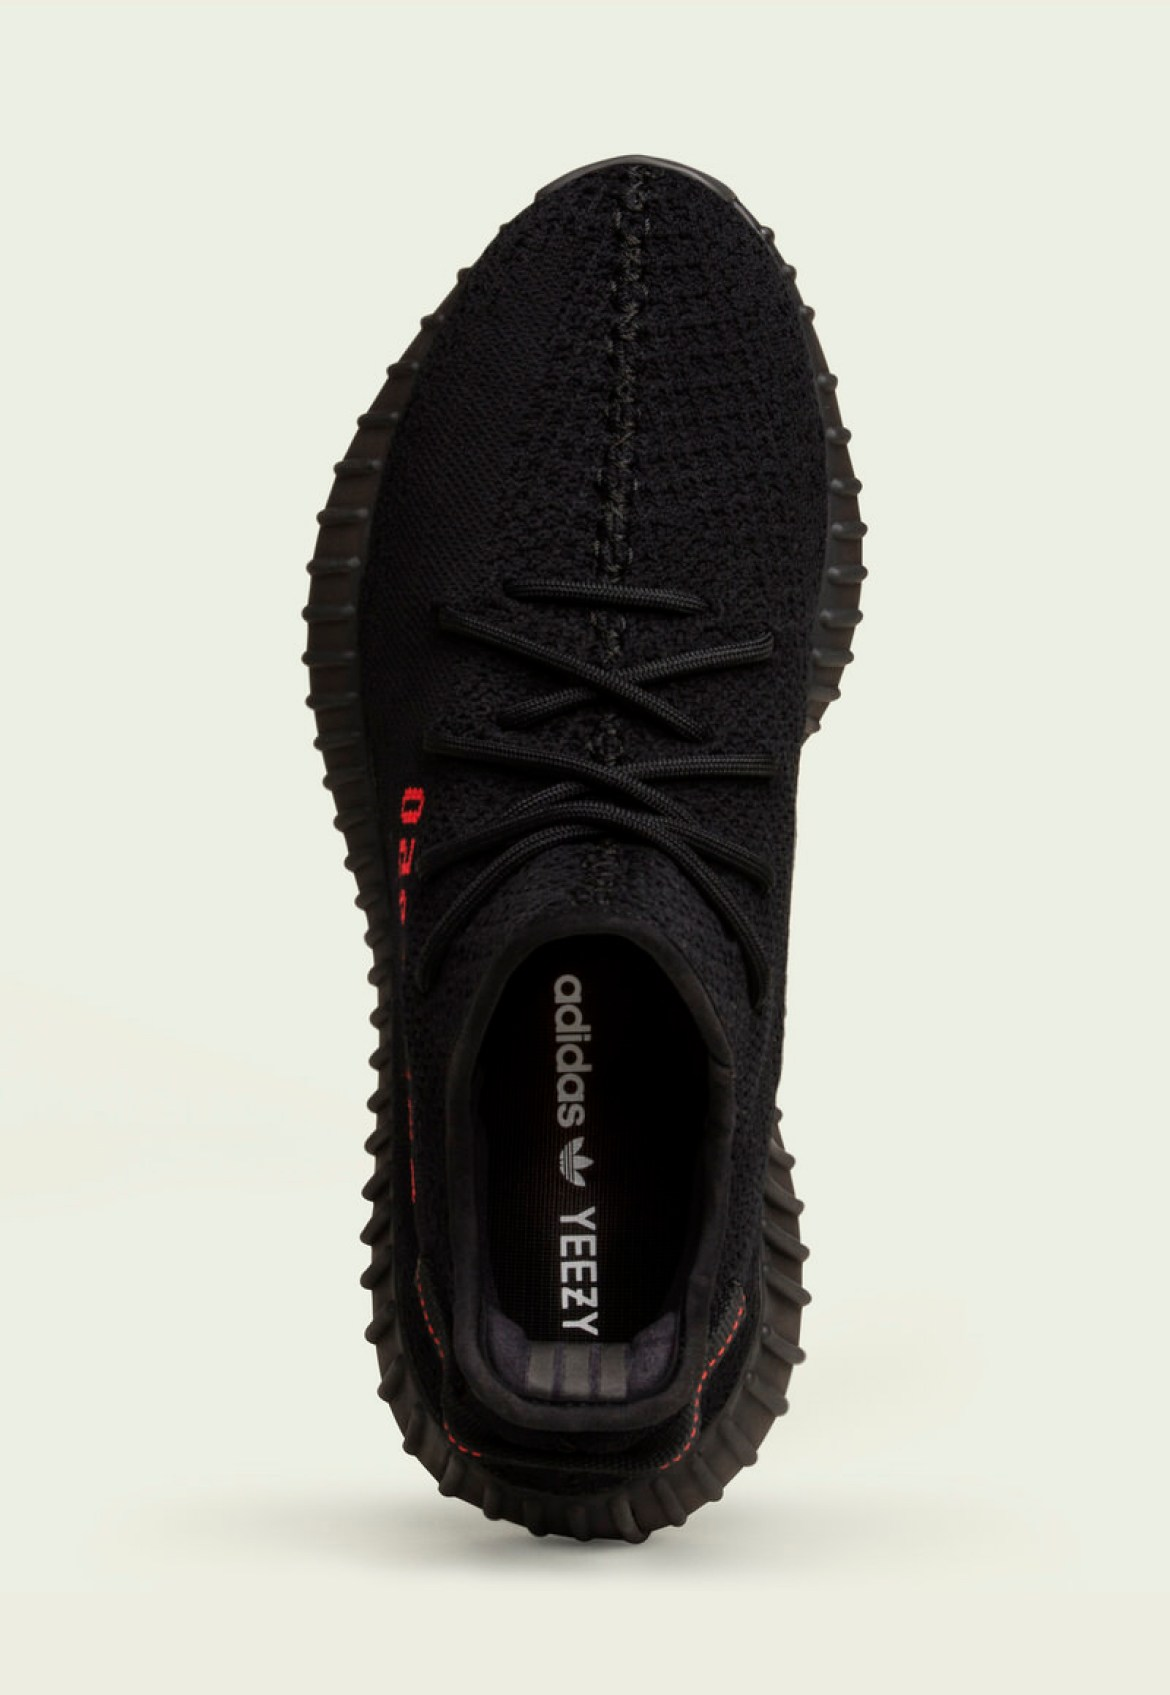 adidas Yeezy Boost 350 V2 Core Black/Red